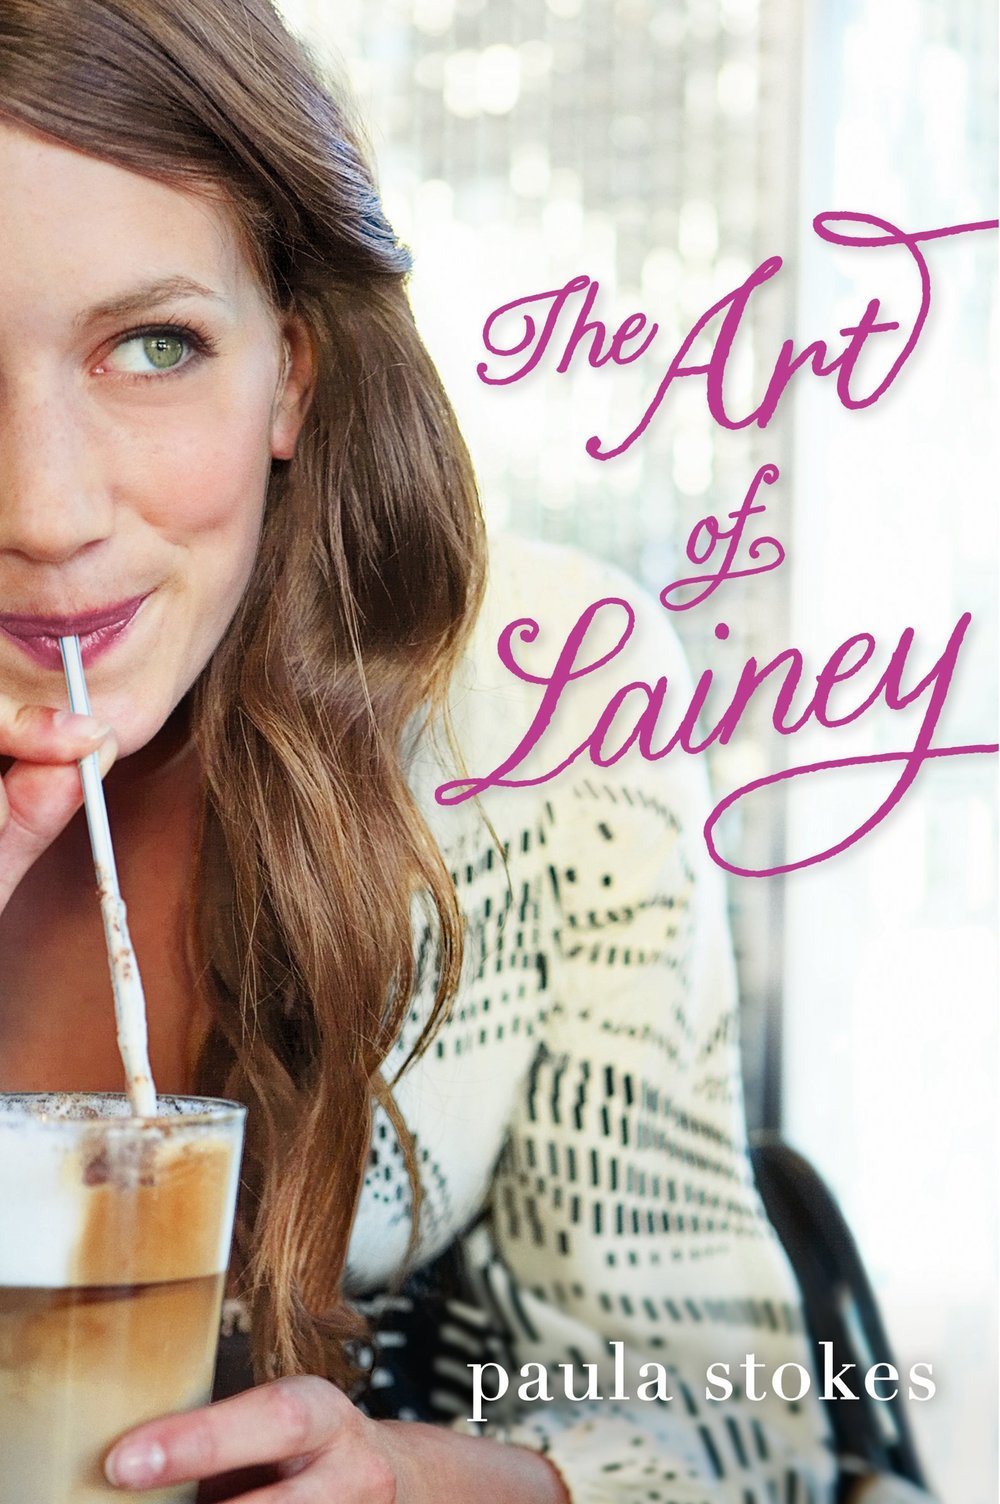 The Art of Lainey by Paula Stokes | Clear Eyes, Full Shelves